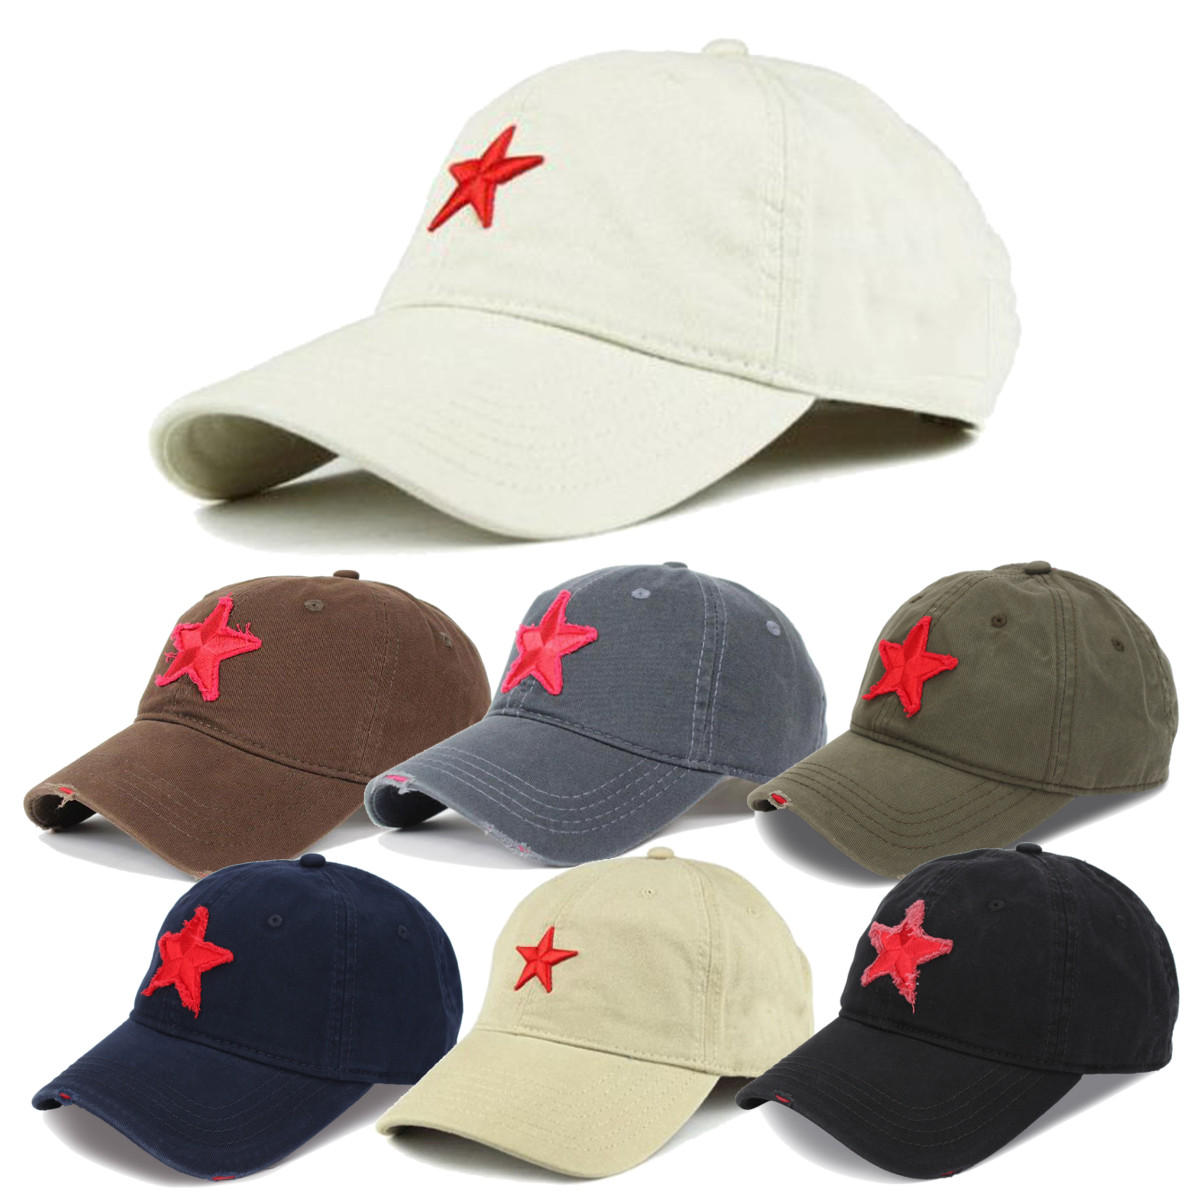 unisex baseball cap golf hat ball five-pointed star embroidery casual sun  caps outdoor sports hat at Banggood sold out 3fddbd5d6